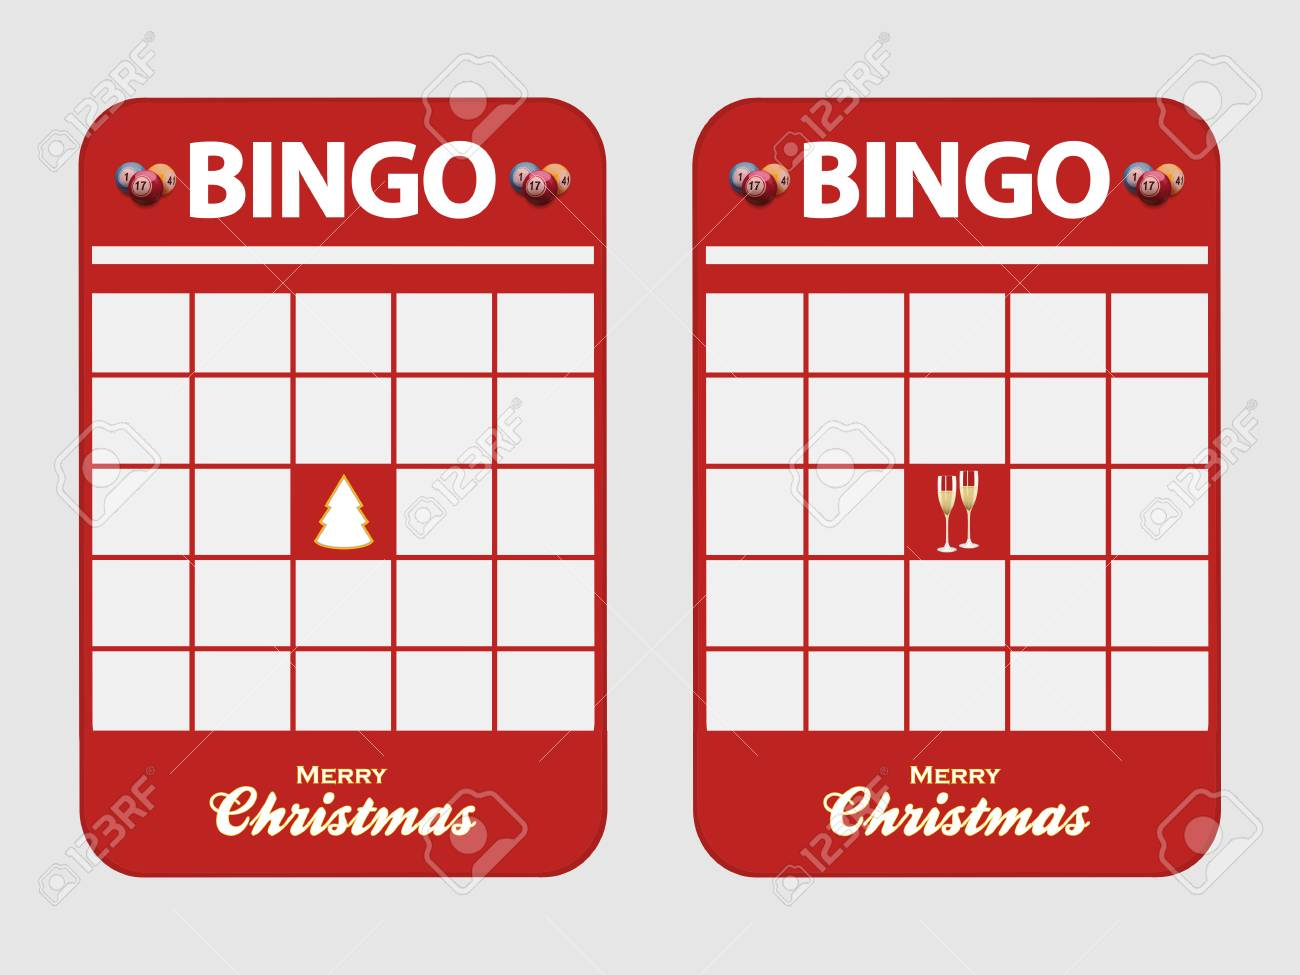 Christmas Bingo Cards.Christmas Festive Red Blank Bingo Cards Decorated With Christmas